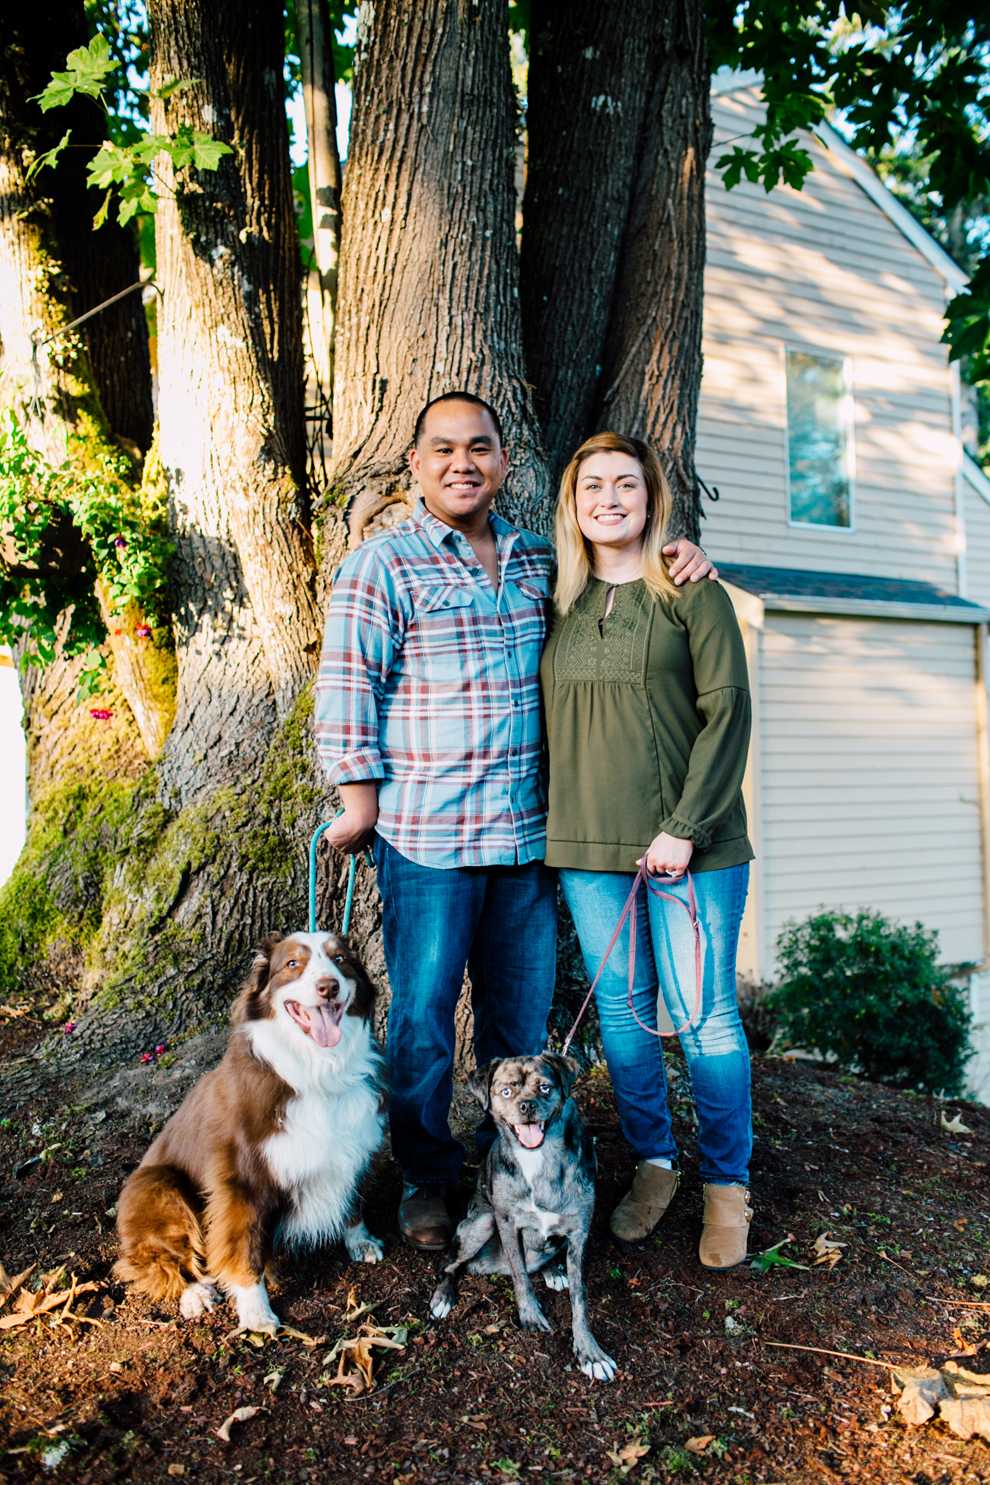 005-bellingham-fall-city-engagement-photographer-katheryn-moran-dogs-tommy-alyssa.jpg